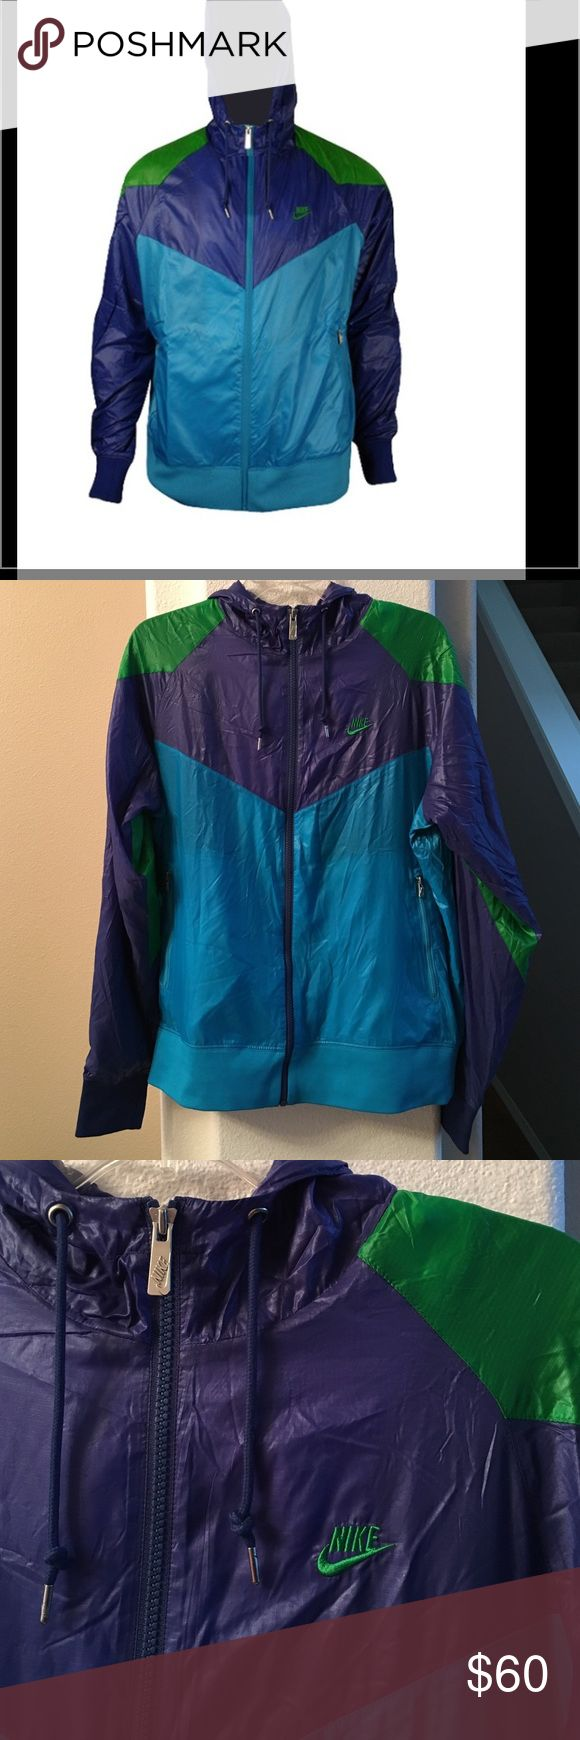 """New Listing! Men's Nike Retro Windrunner Men's Nike retro Windrunner Jacket. Elastic waist and cuffs, two front outer pockets with zippers, hood with drawstring. Complete with vintage old school Nike logo embroidered on chest. Size medium. Excellent used condition! 22"""" across chest and 26.5"""" long. Nike Jackets & Coats Windbreakers"""